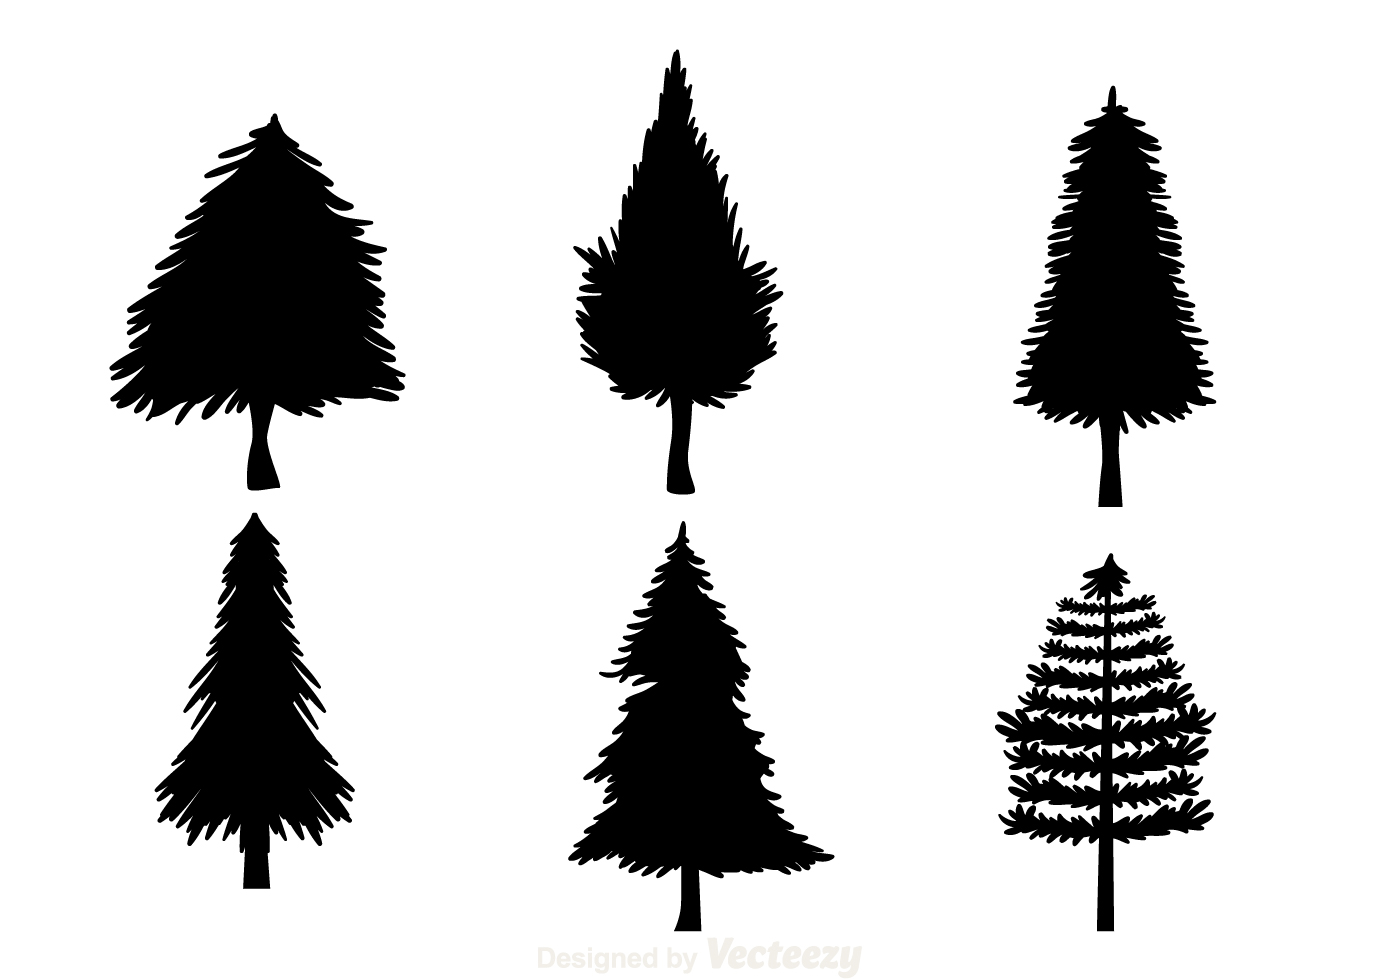 Black Christmas Tree Silhouettes